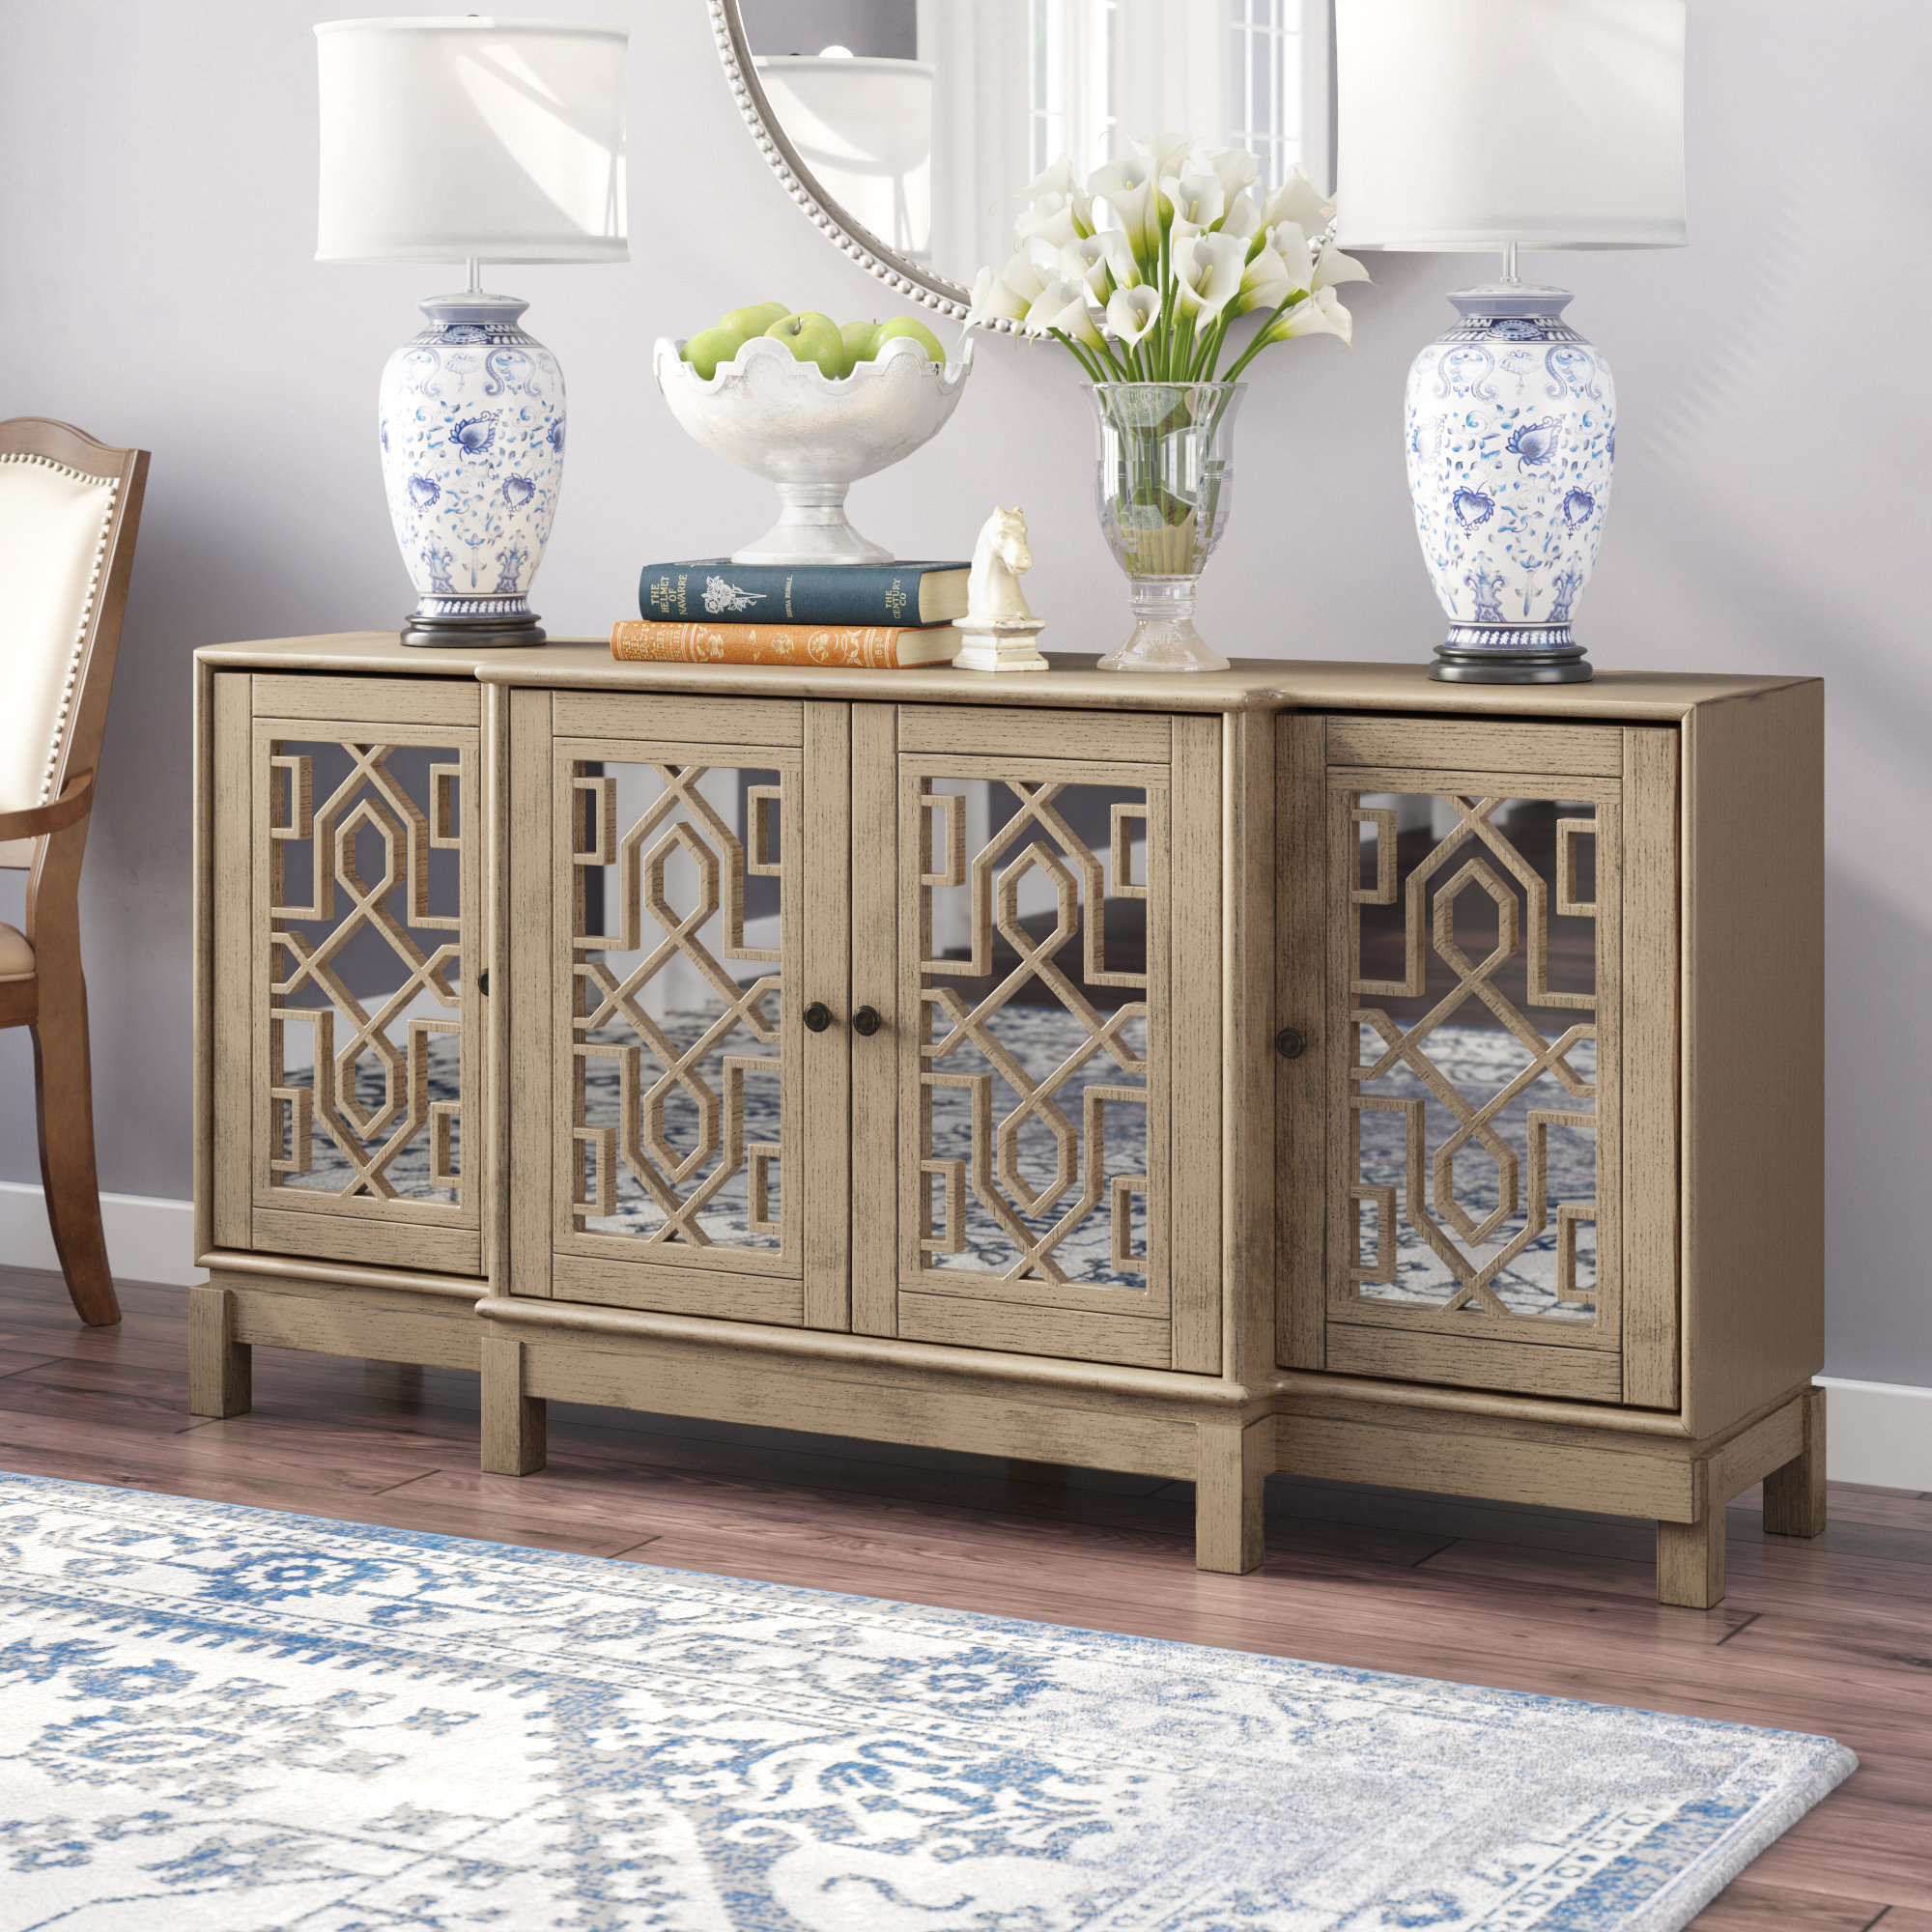 Sideboards & Buffet Tables You'll Love In 2019 | Wayfair Regarding Most Recent Longley Sideboards (View 17 of 20)